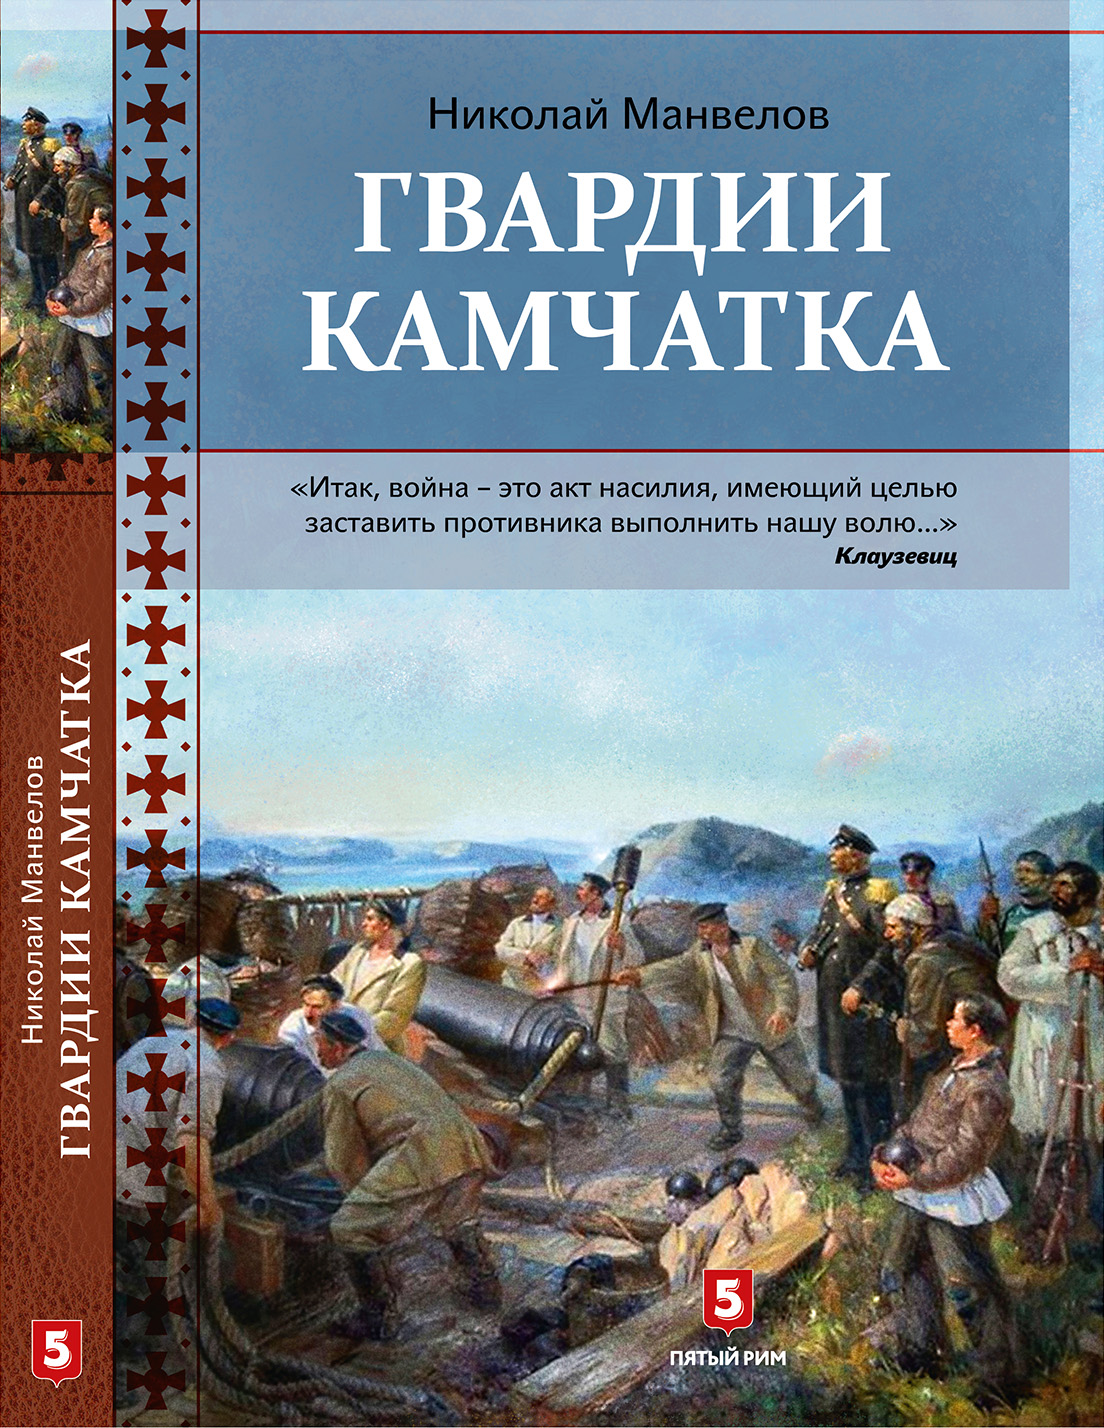 Kamchatka_cover1